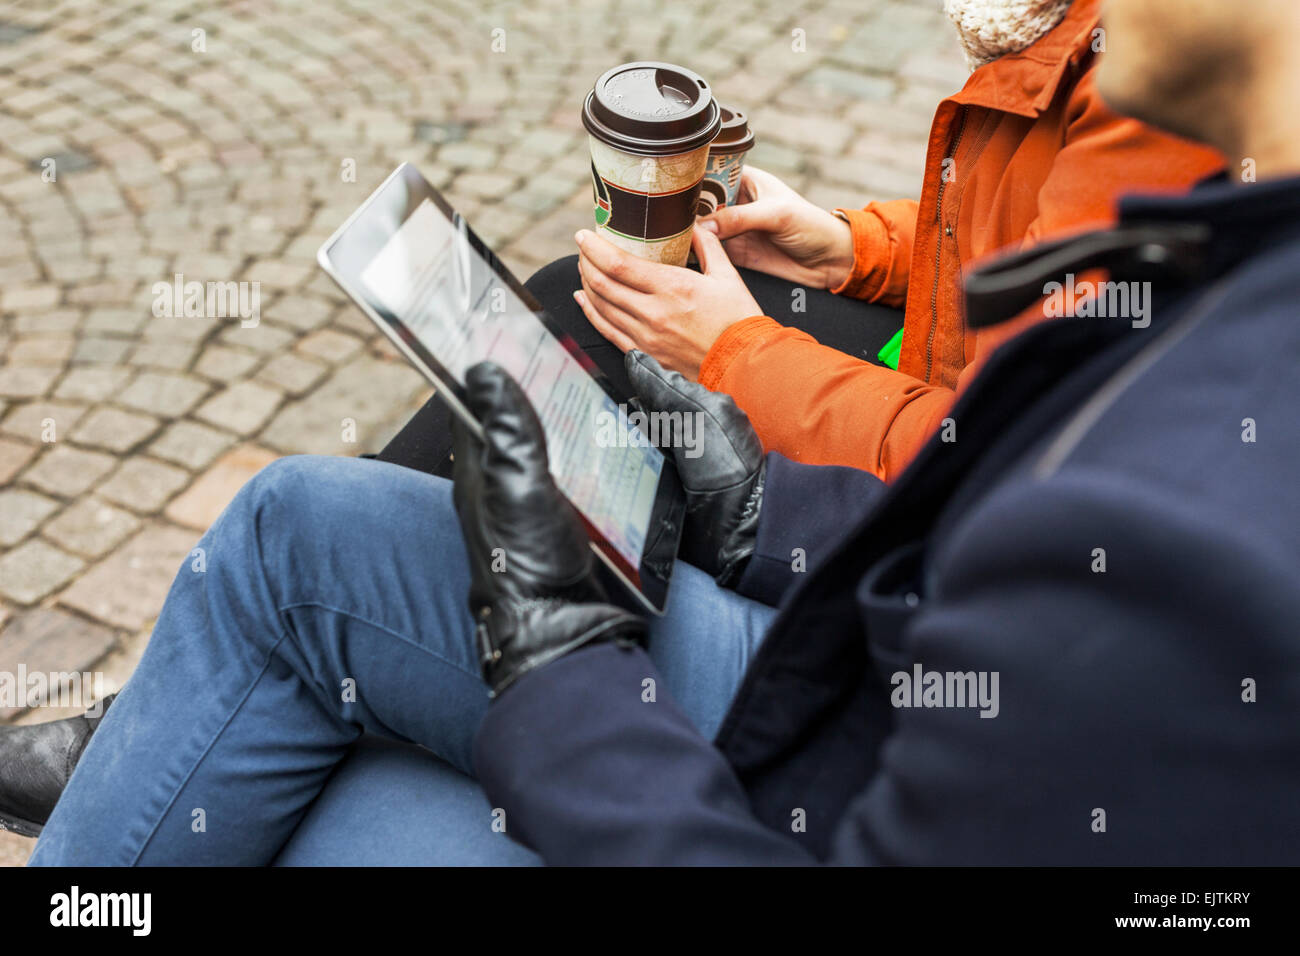 Midsection of man and woman with digital tablet and disposable coffee cups on sidewalk - Stock Image